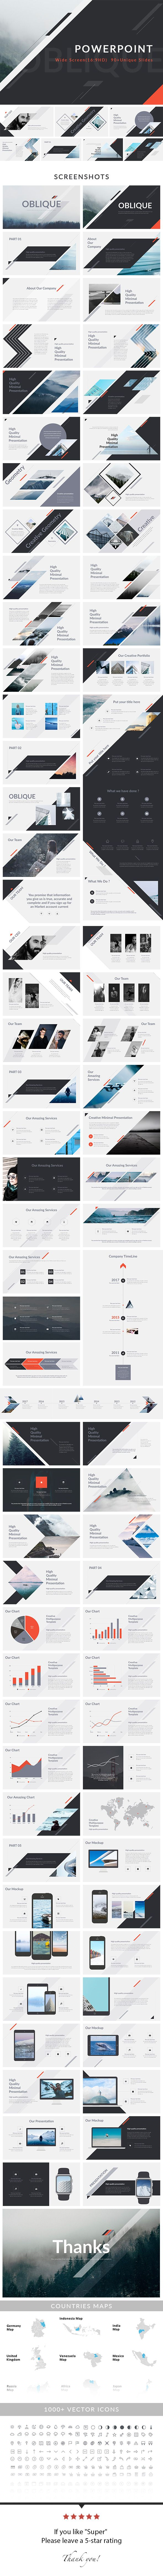 Oblique powerpoint presentation template powerpoint oblique powerpoint presentation template alramifo Gallery